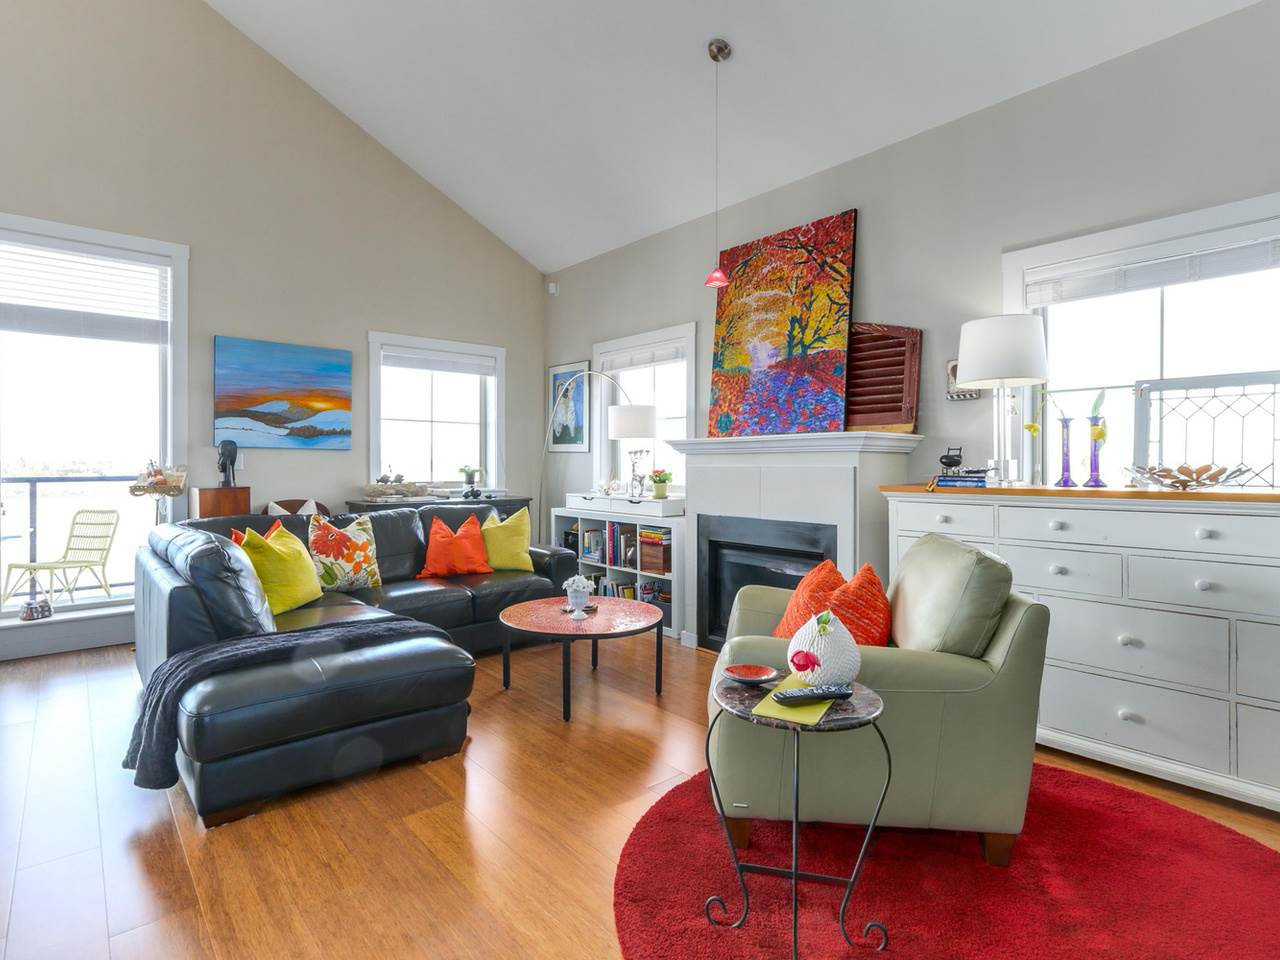 "Photo 9: Photos: 419 6233 LONDON Road in Richmond: Steveston South Condo for sale in ""LONDON STATION ONE"" : MLS®# R2133663"